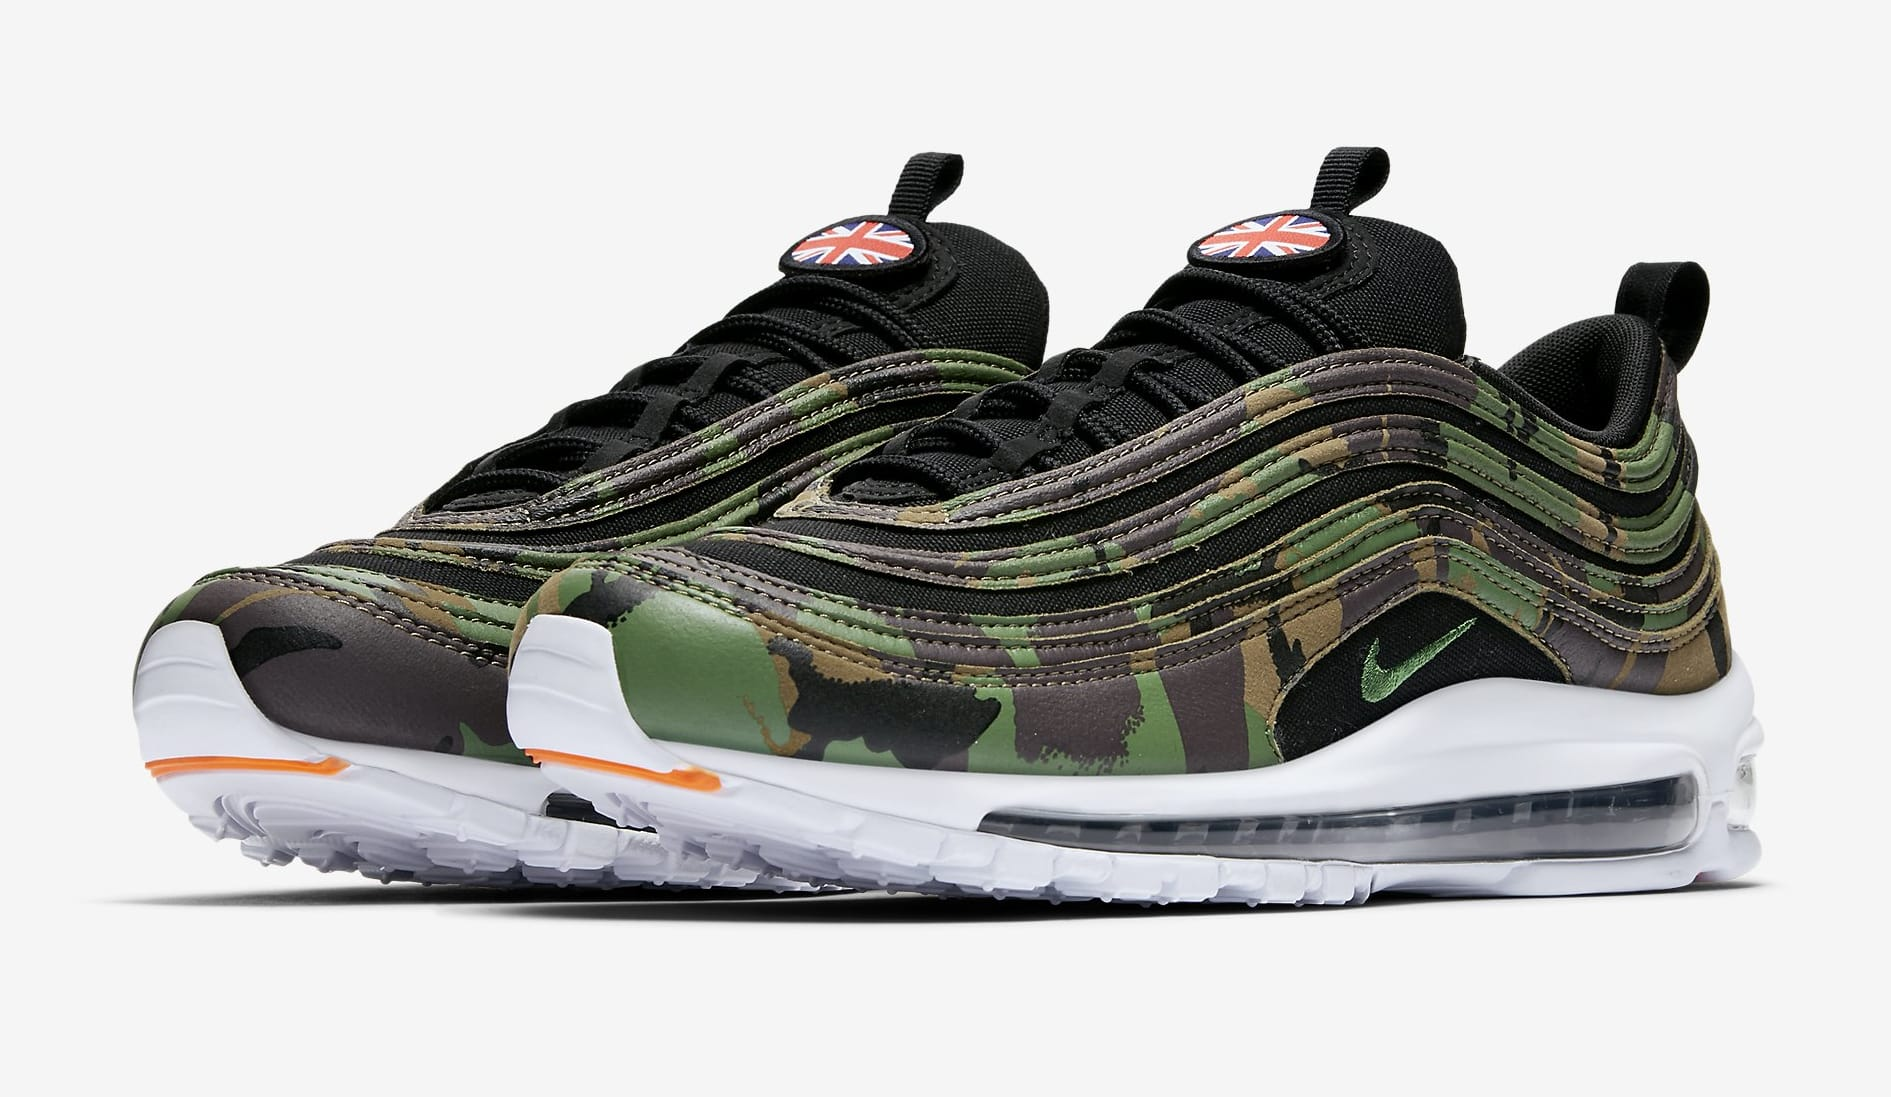 Image via Nike Nike Air Max 97 Country Camo UK AJ2614201 Pair